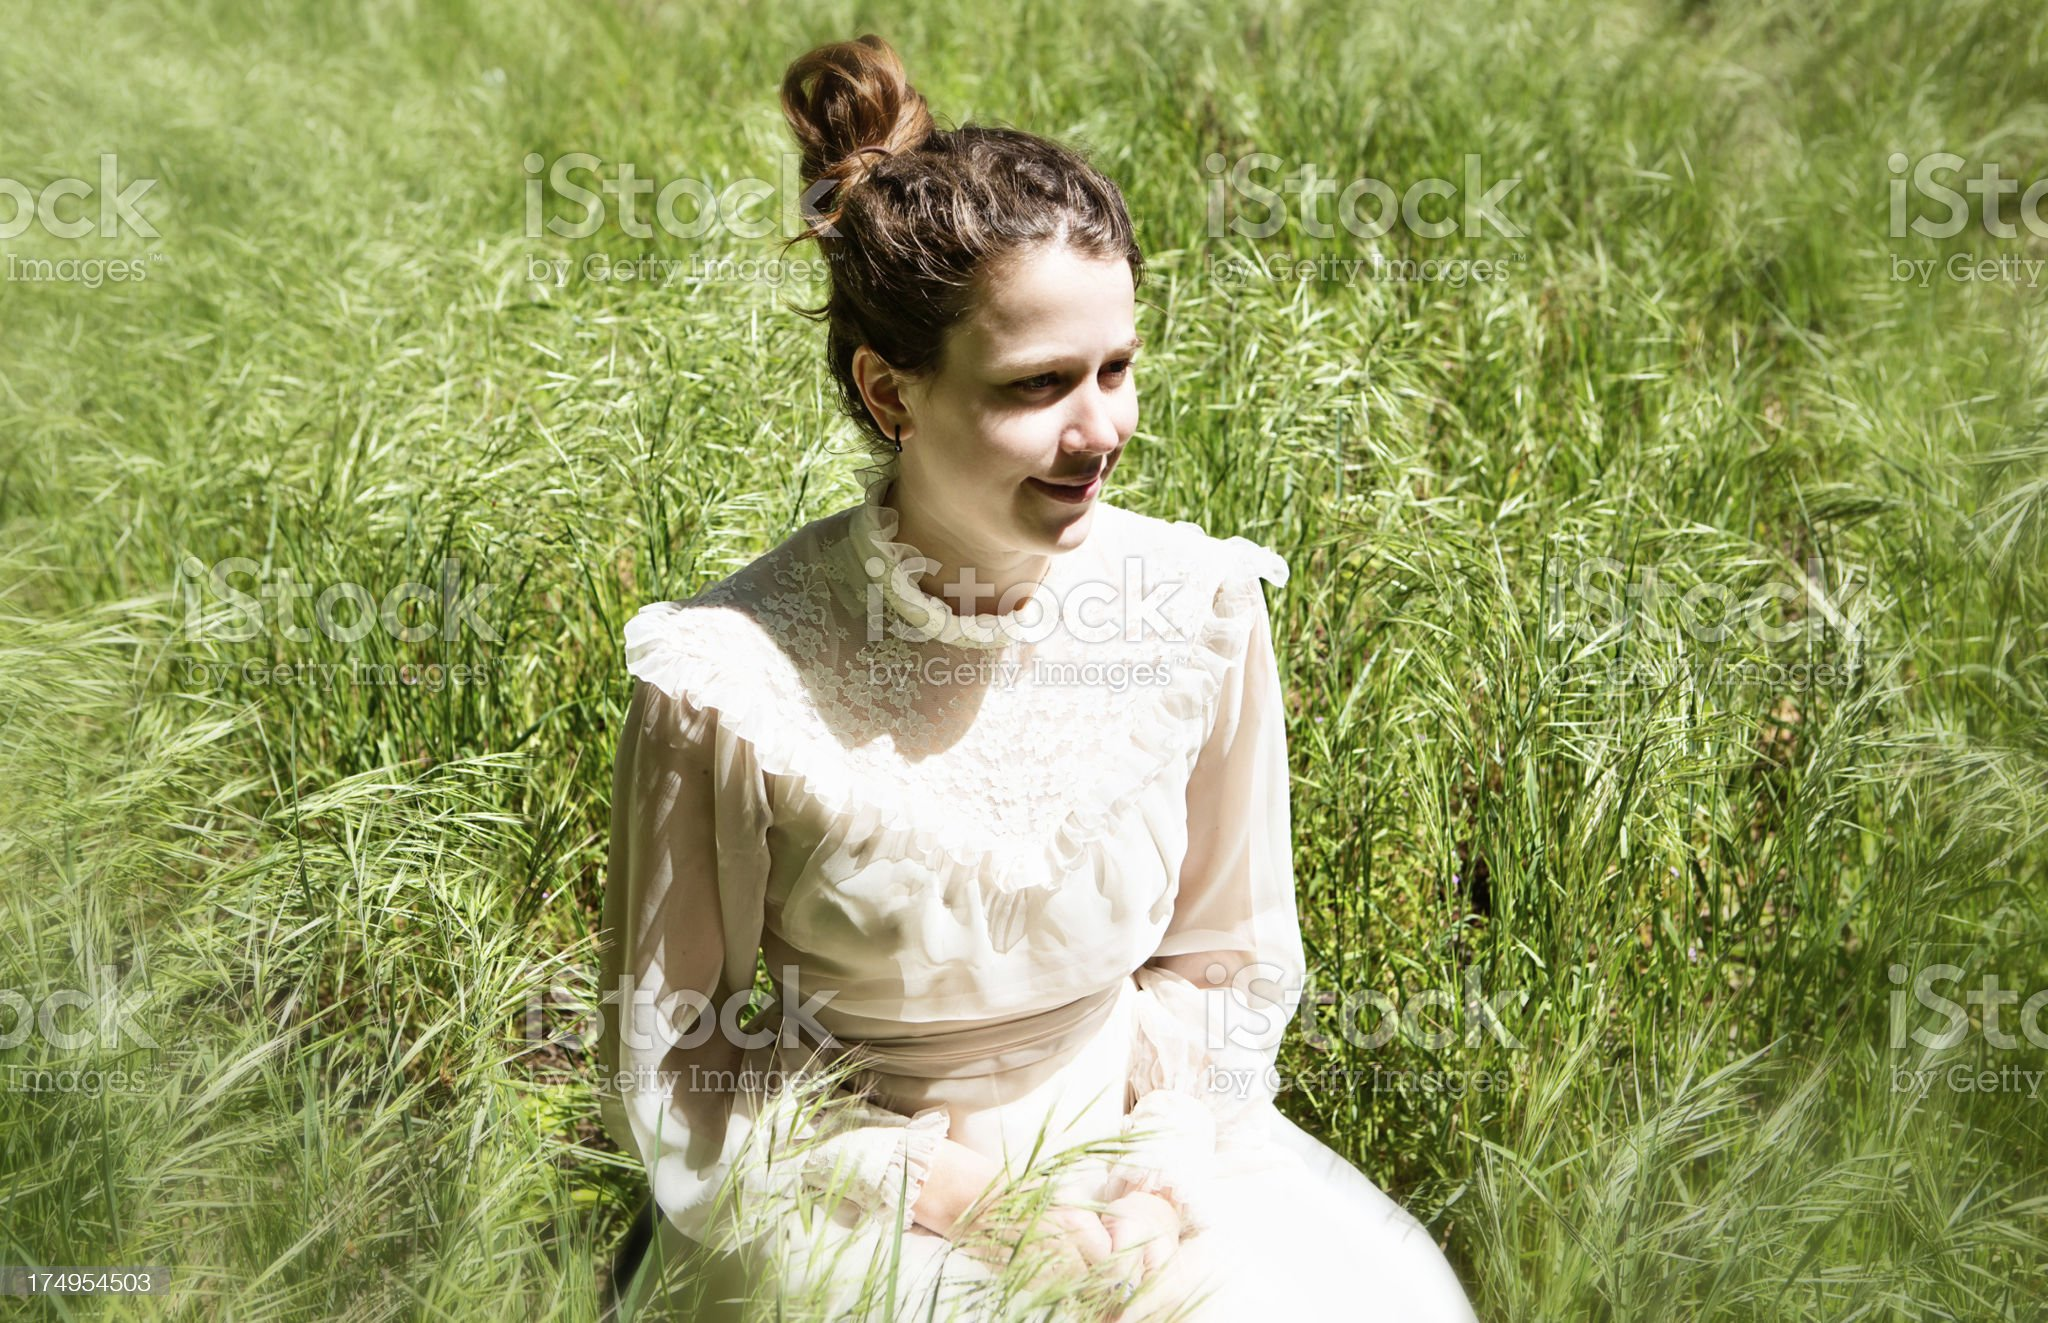 Romantic soft-focus portrait of old-fashioned young woman smiling royalty-free stock photo